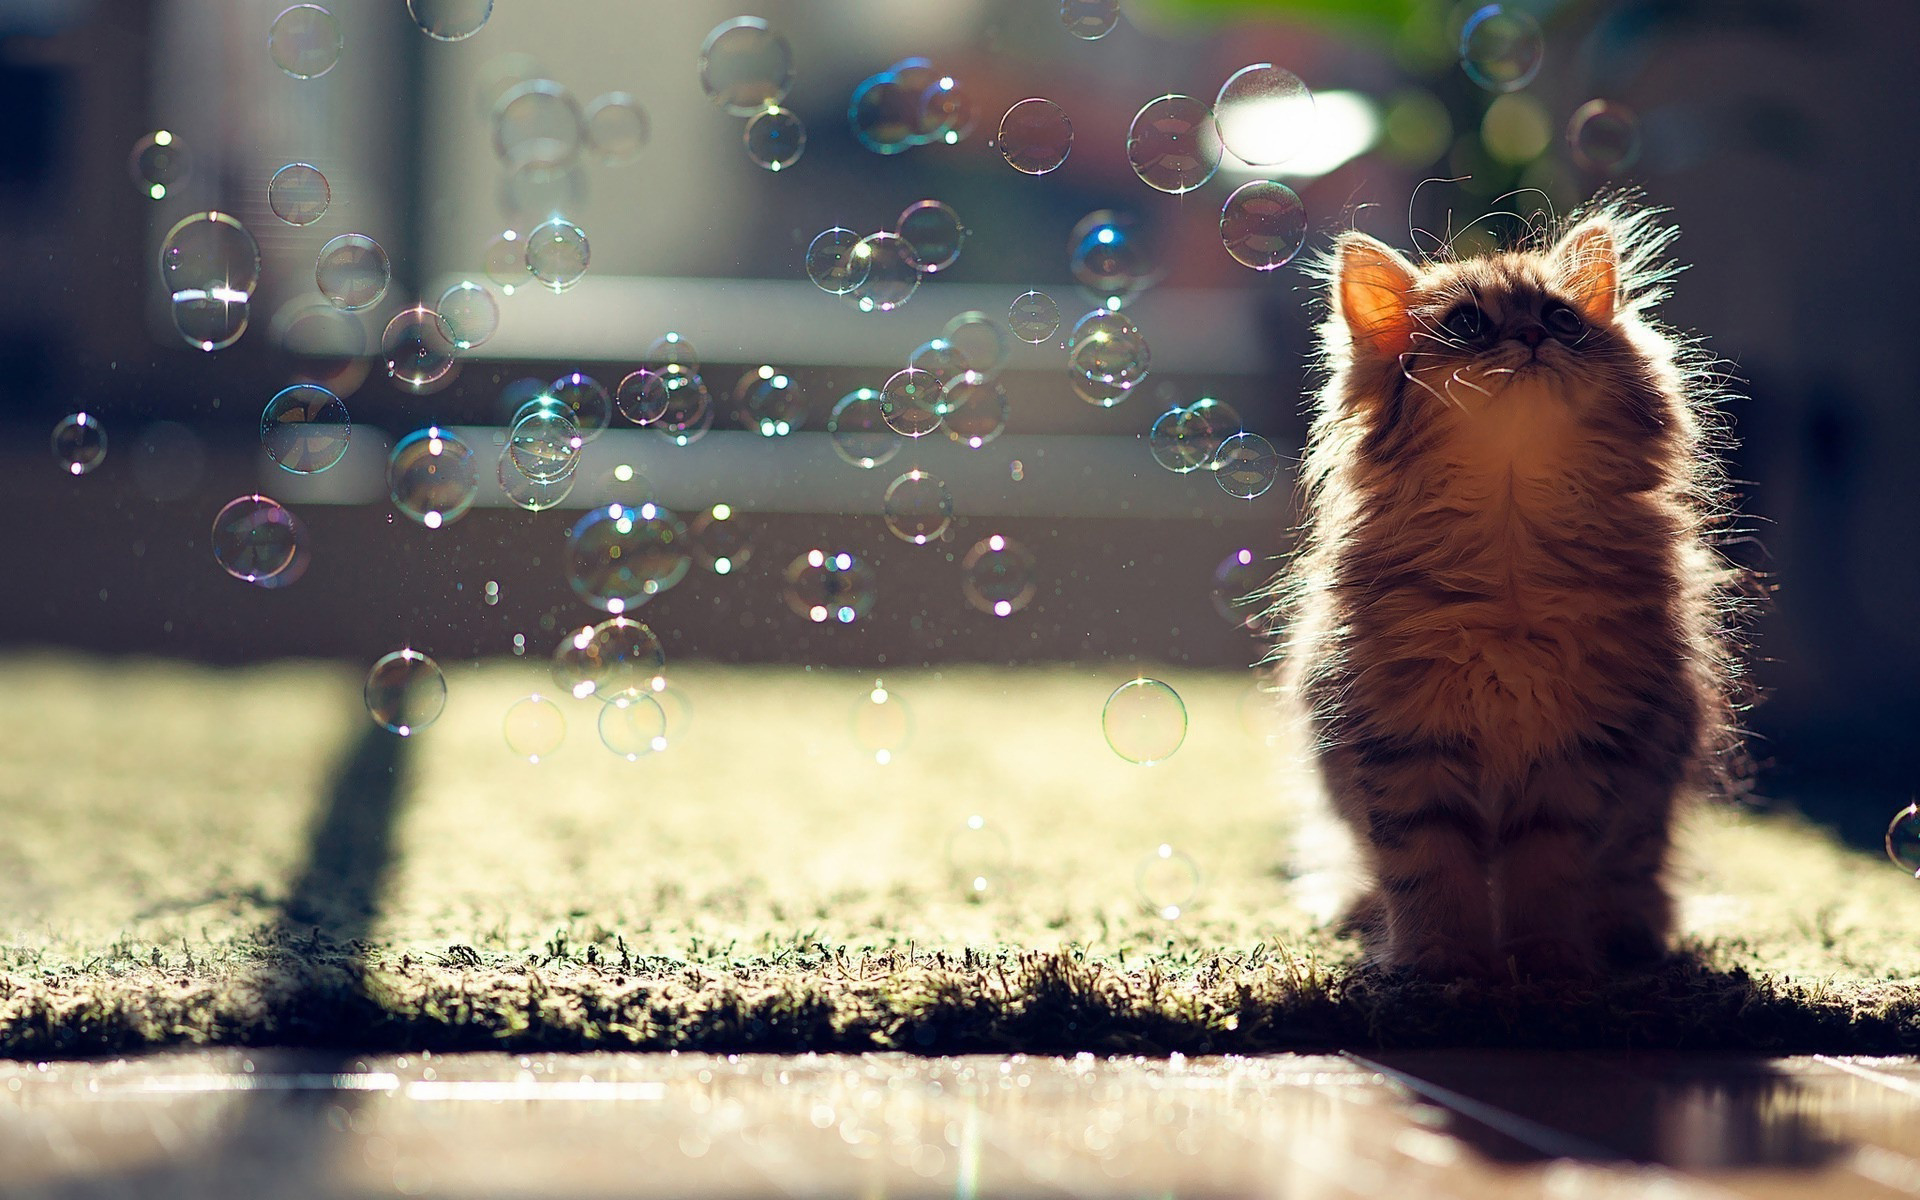 Cat soap bubbles